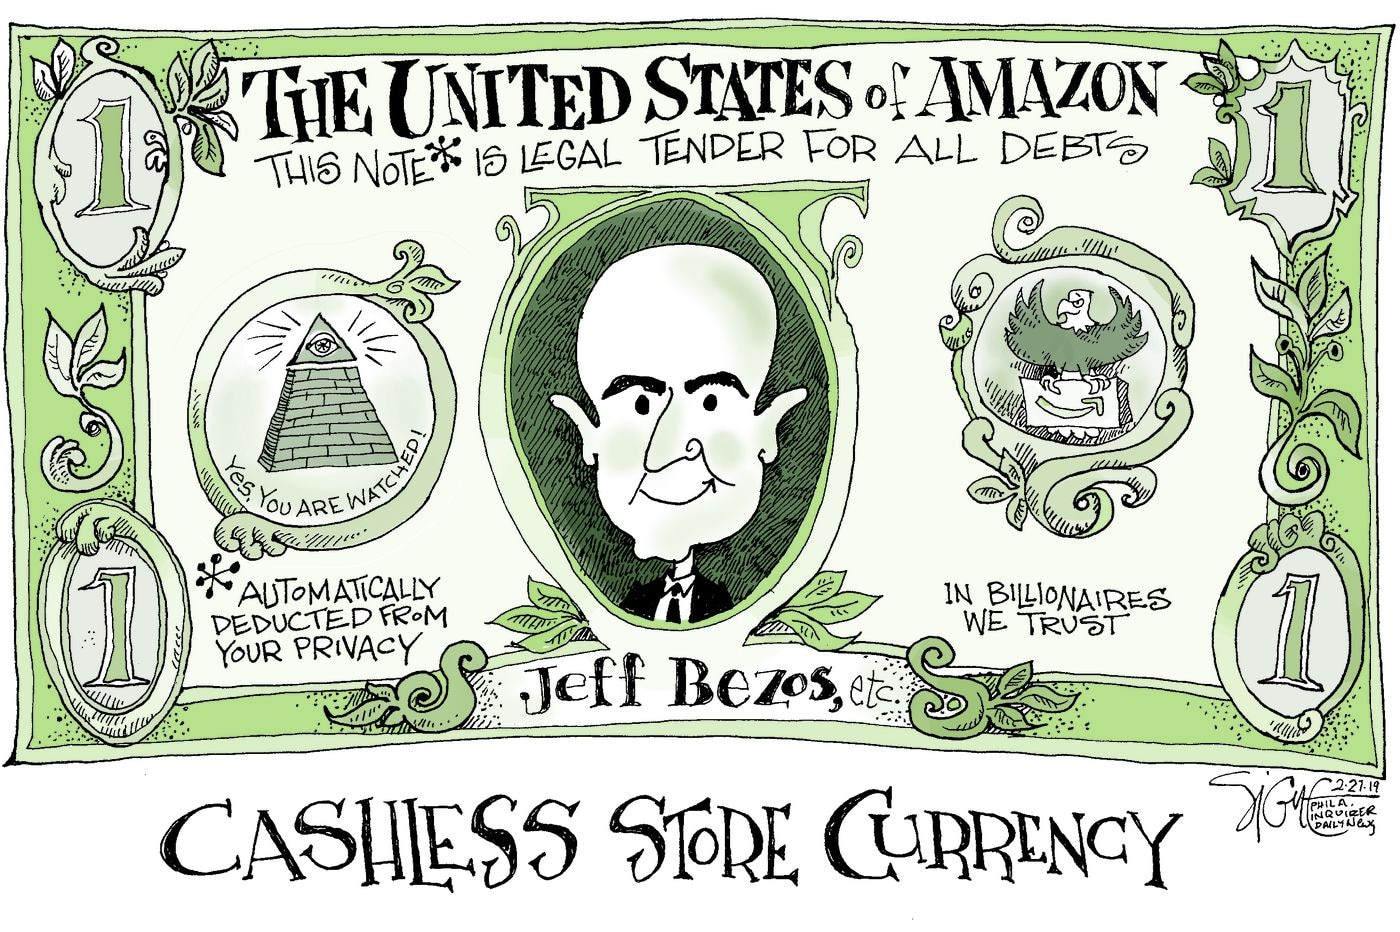 Title:  Cashless Store Currency.  Image:  Dollar bill bearing Jeff Bezos's face and headed